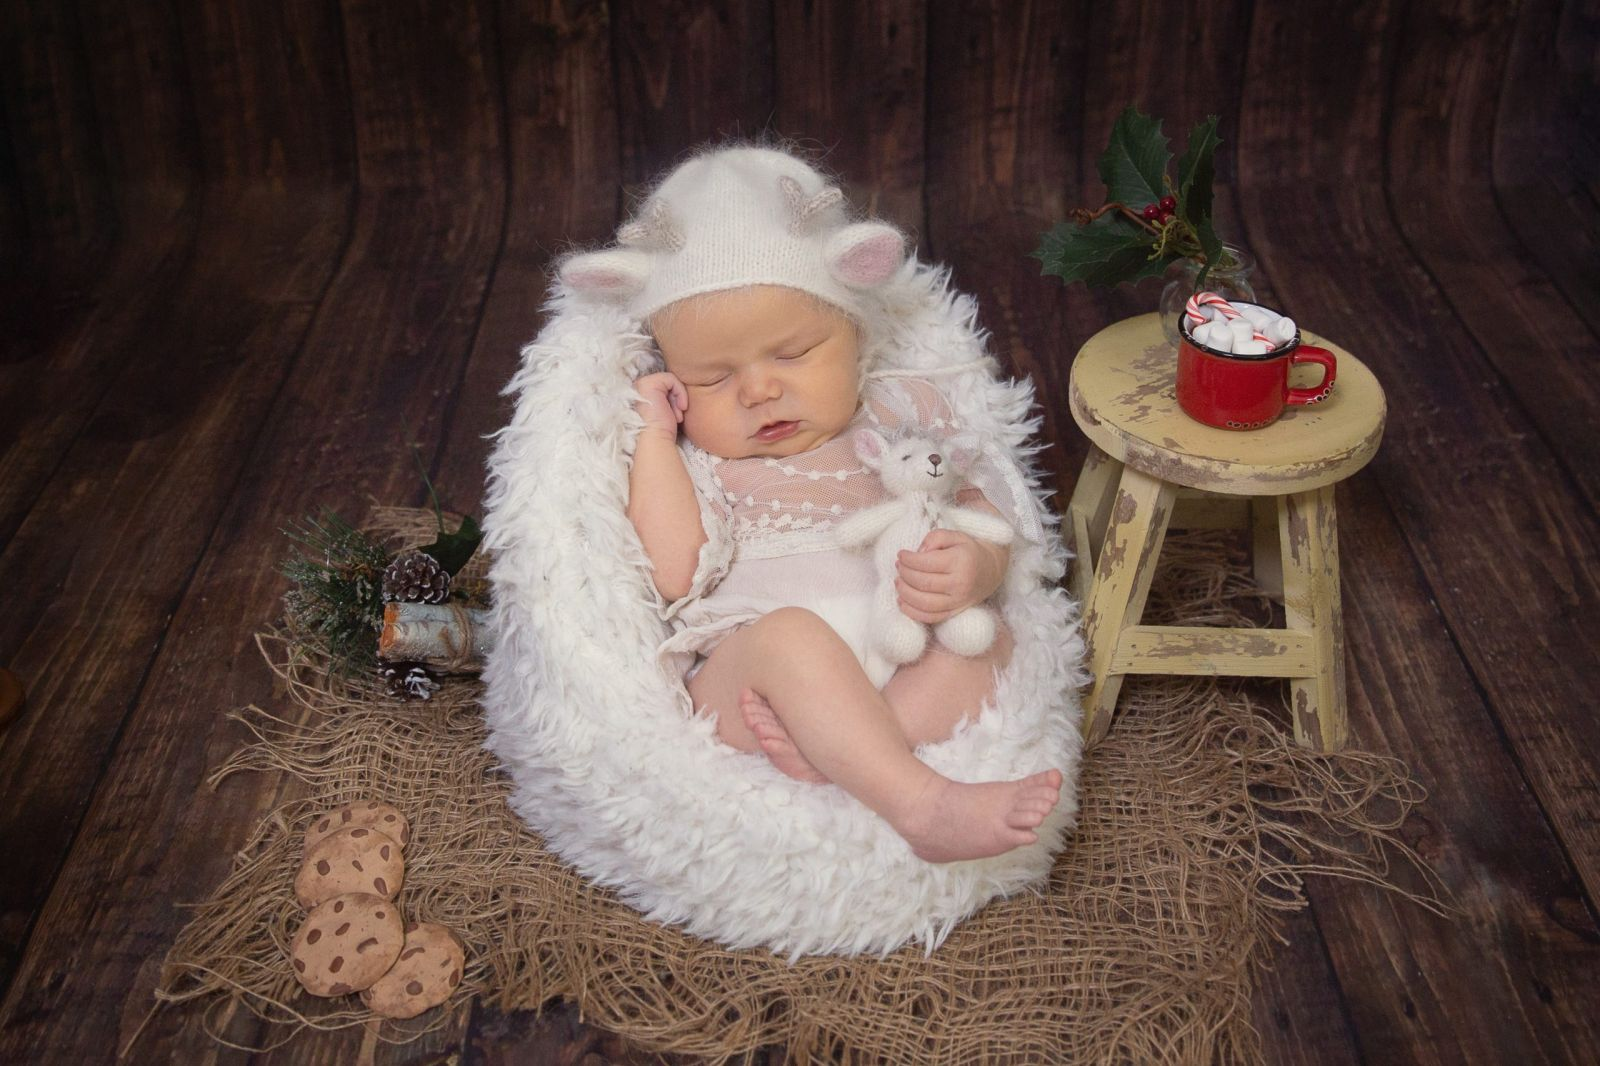 Best newborn photographer Flower Mound